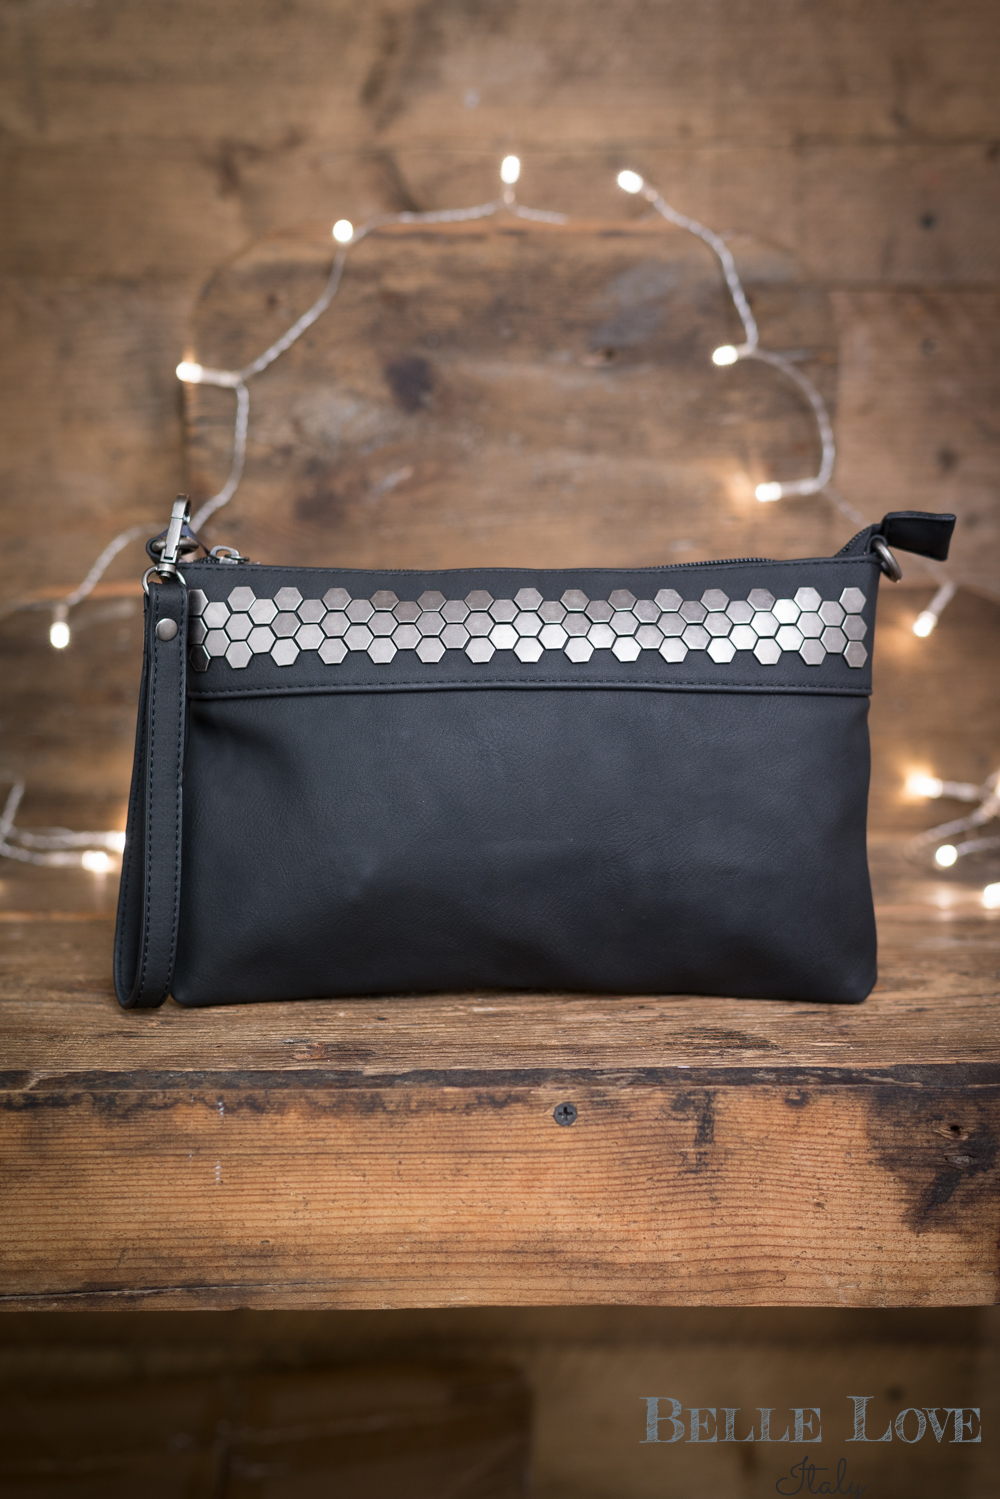 Belle Love Italy Raw Metal Clutch